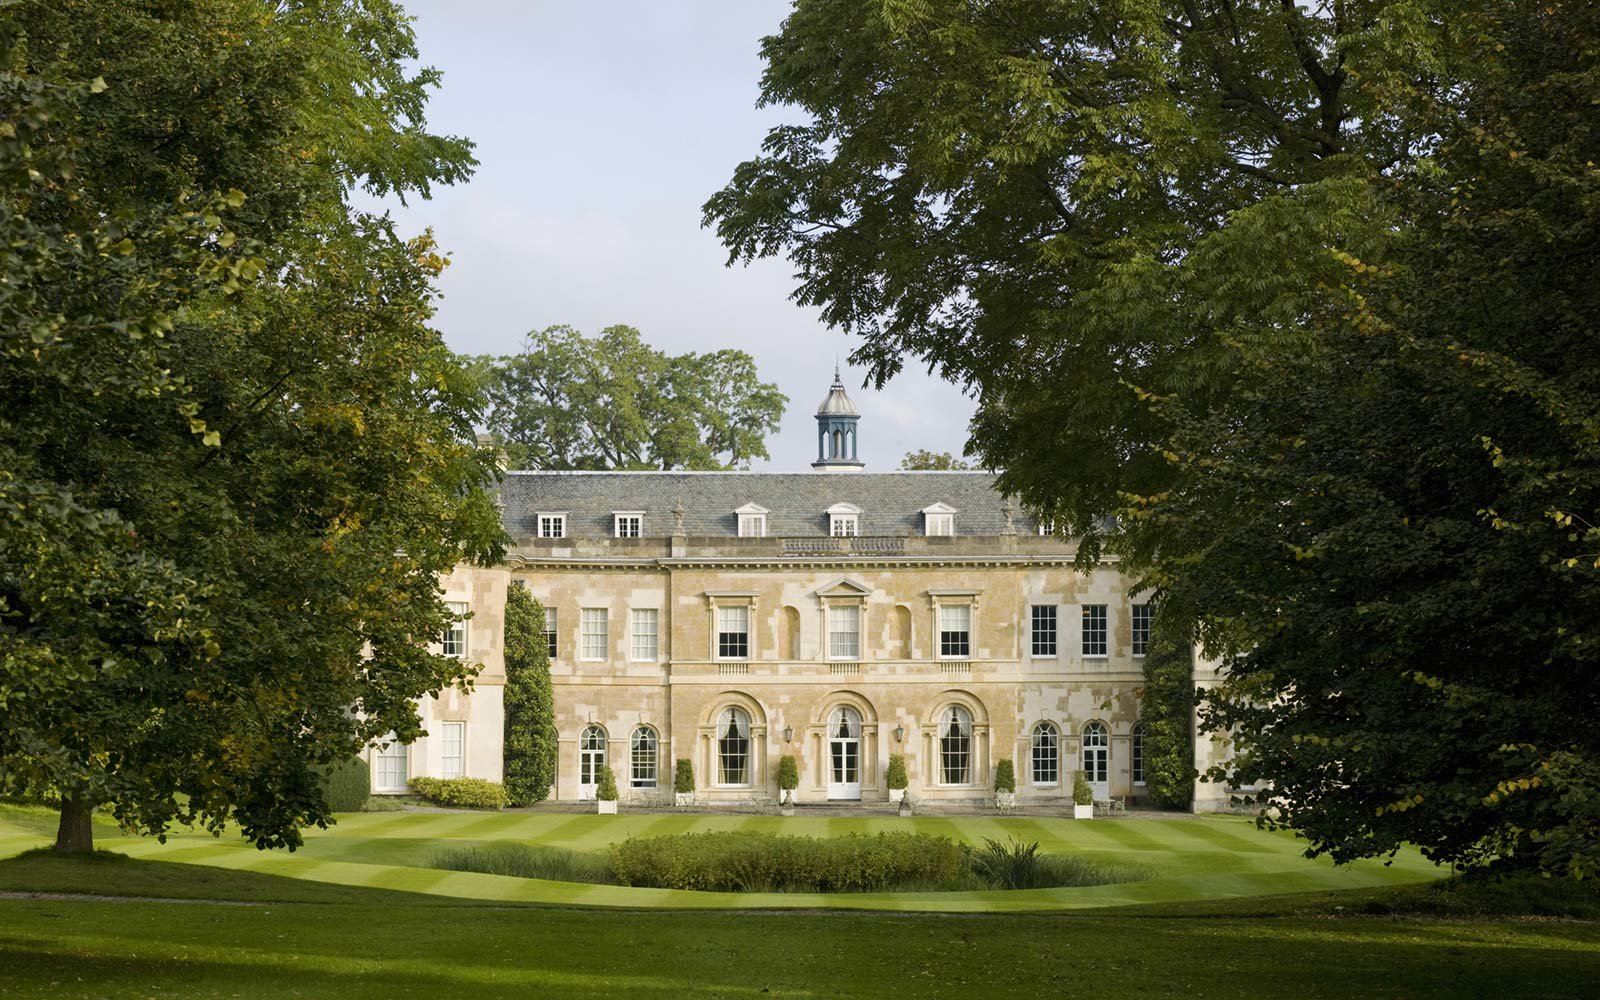 Hartwell House, Buckinghamshire, United Kingdom